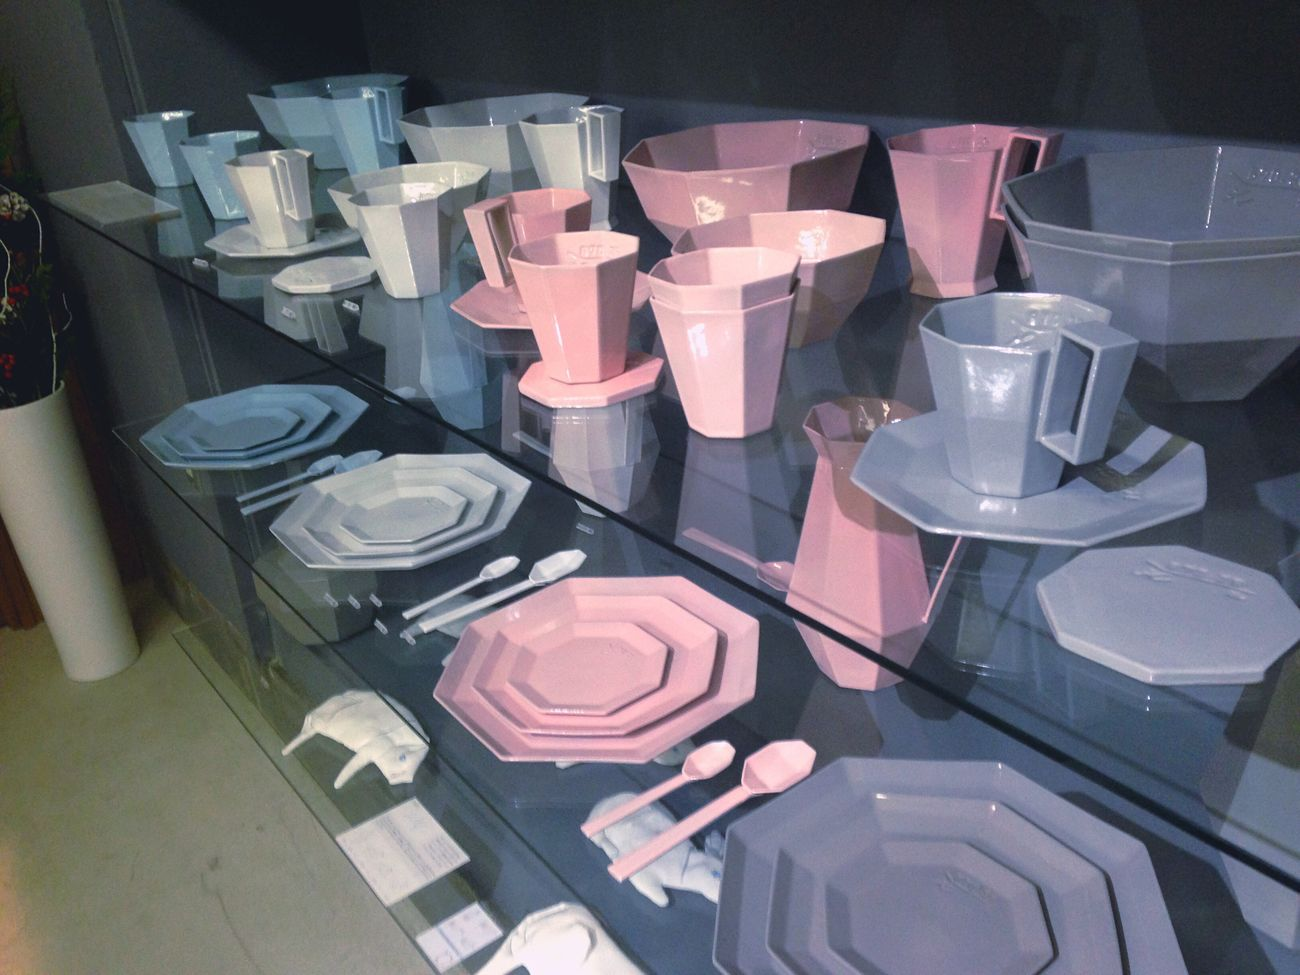 Millennial Pink Large Group Of Objects High Angle View No People Indoors  Day Kikof 信楽焼 Handmade 食器 滋賀 信楽 東京 六本木